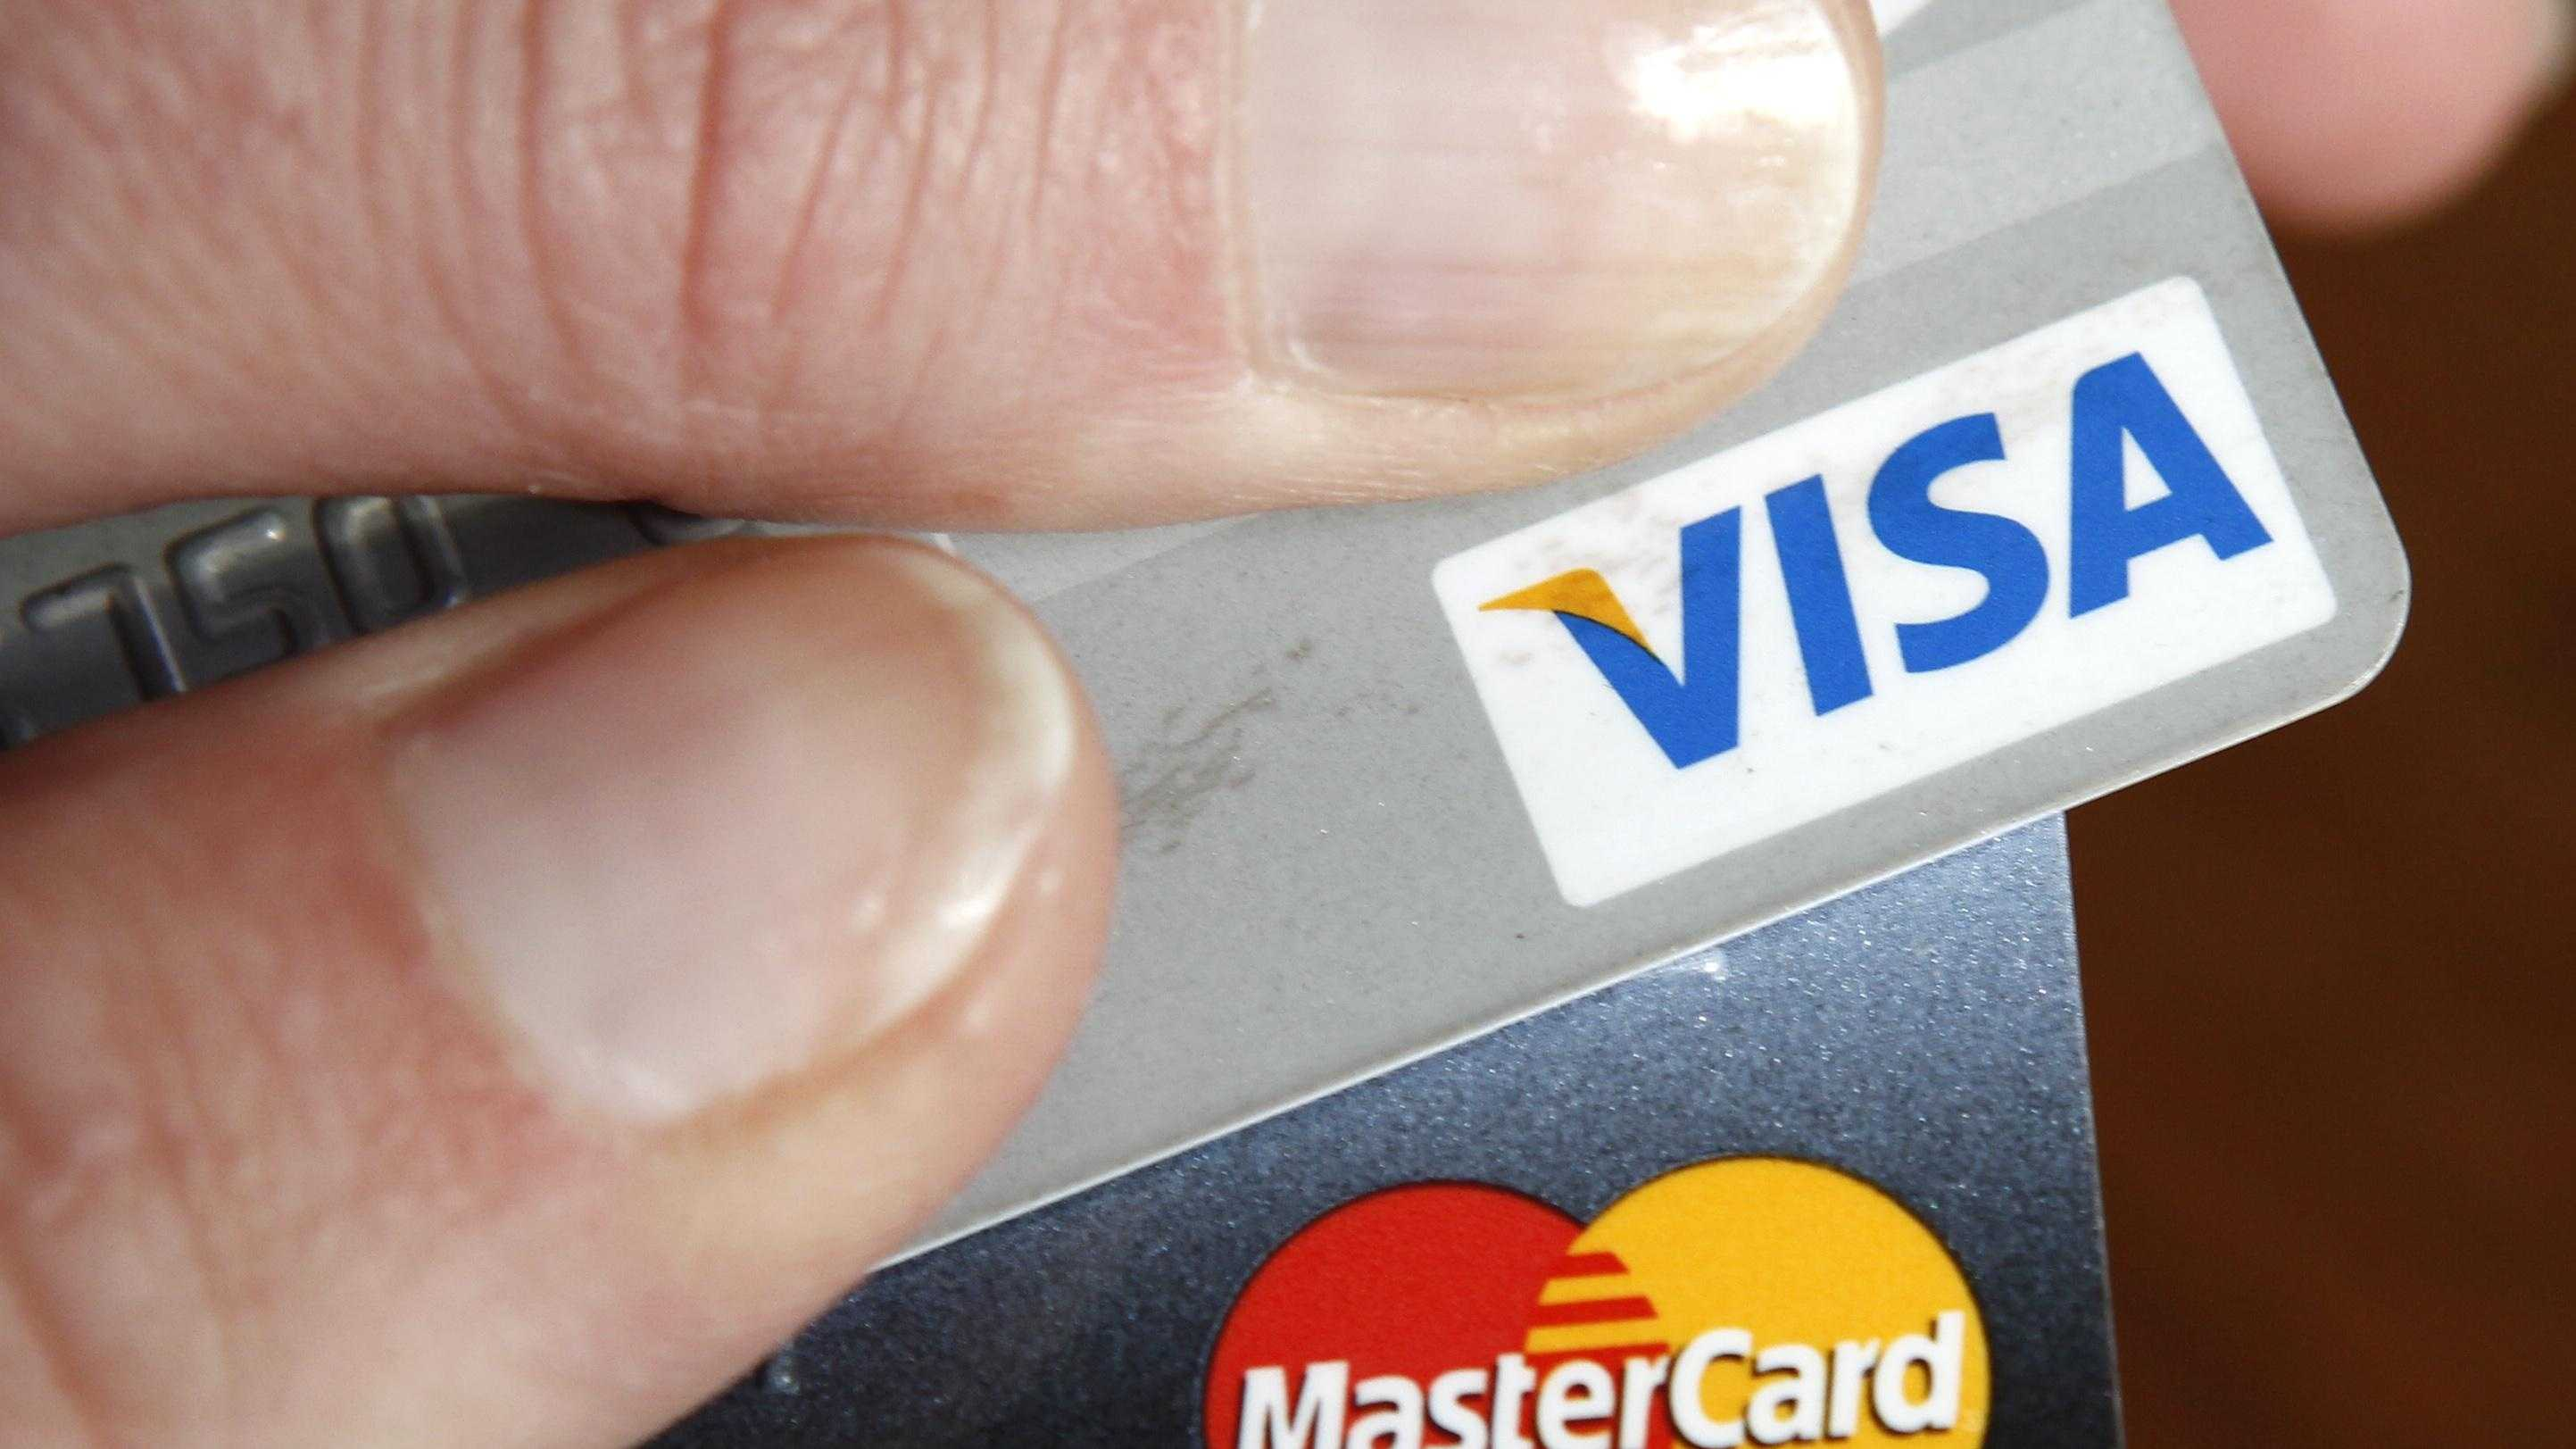 Credit cards can help make a breeze out of holiday shopping. A few missteps, though, and that breeze can turn into a storm of financial headaches.